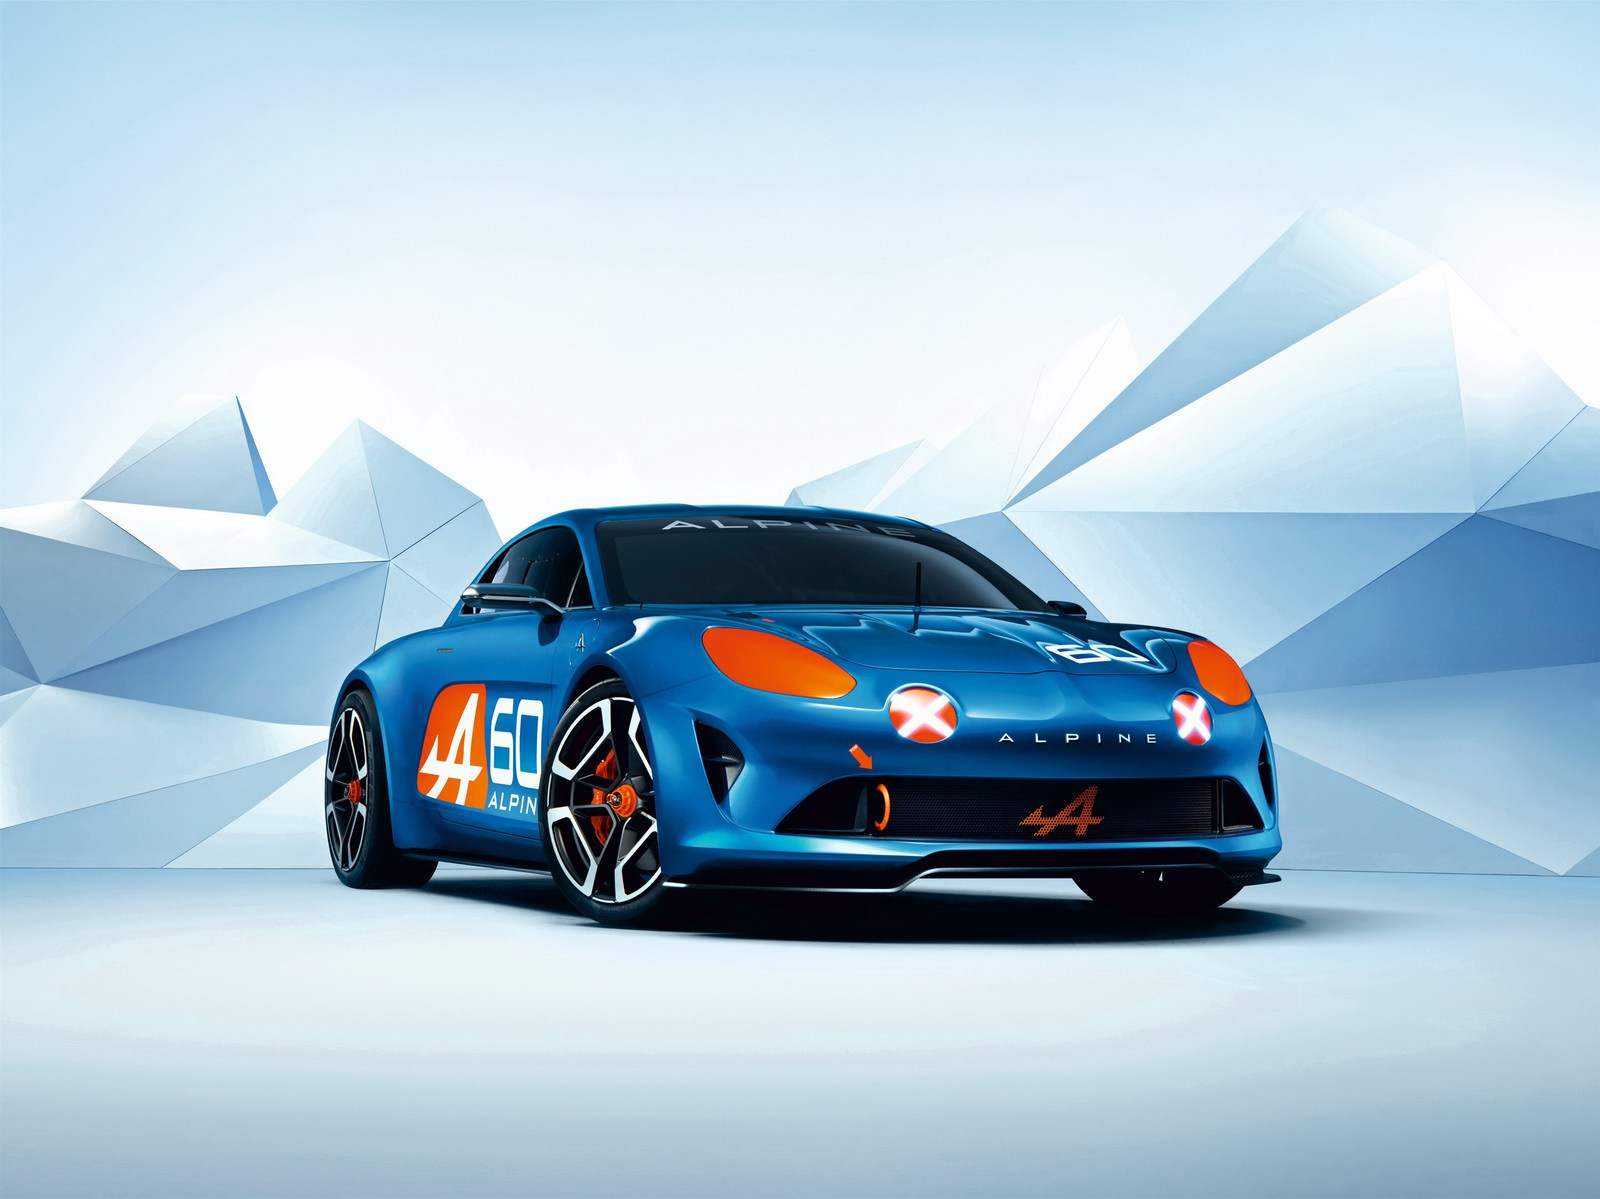 Alpine will present the A120 on 16 February